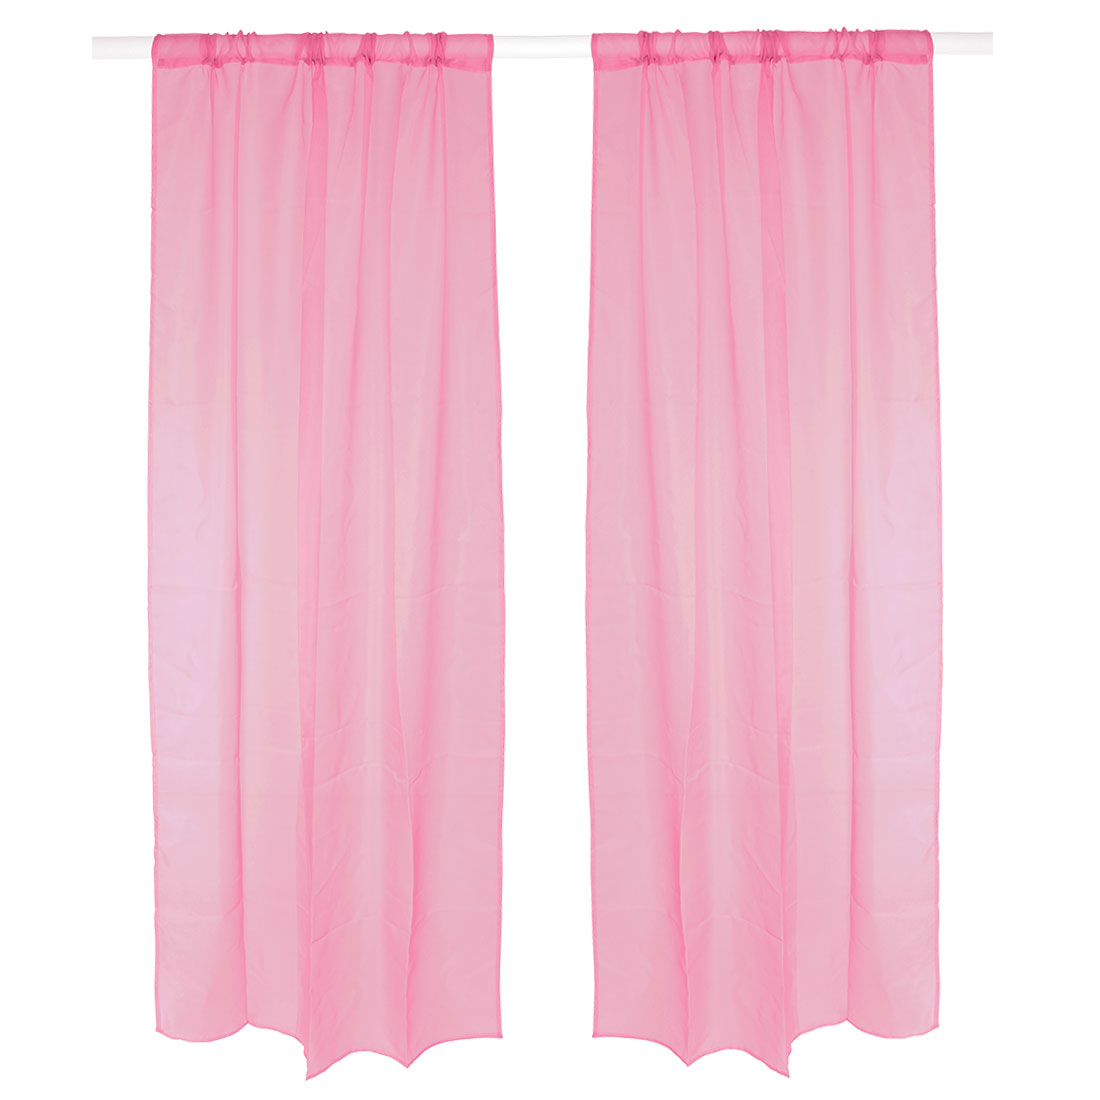 Bedroom Background Divider Panel Window Sheer Curtain Light Pink 100 x 200cm